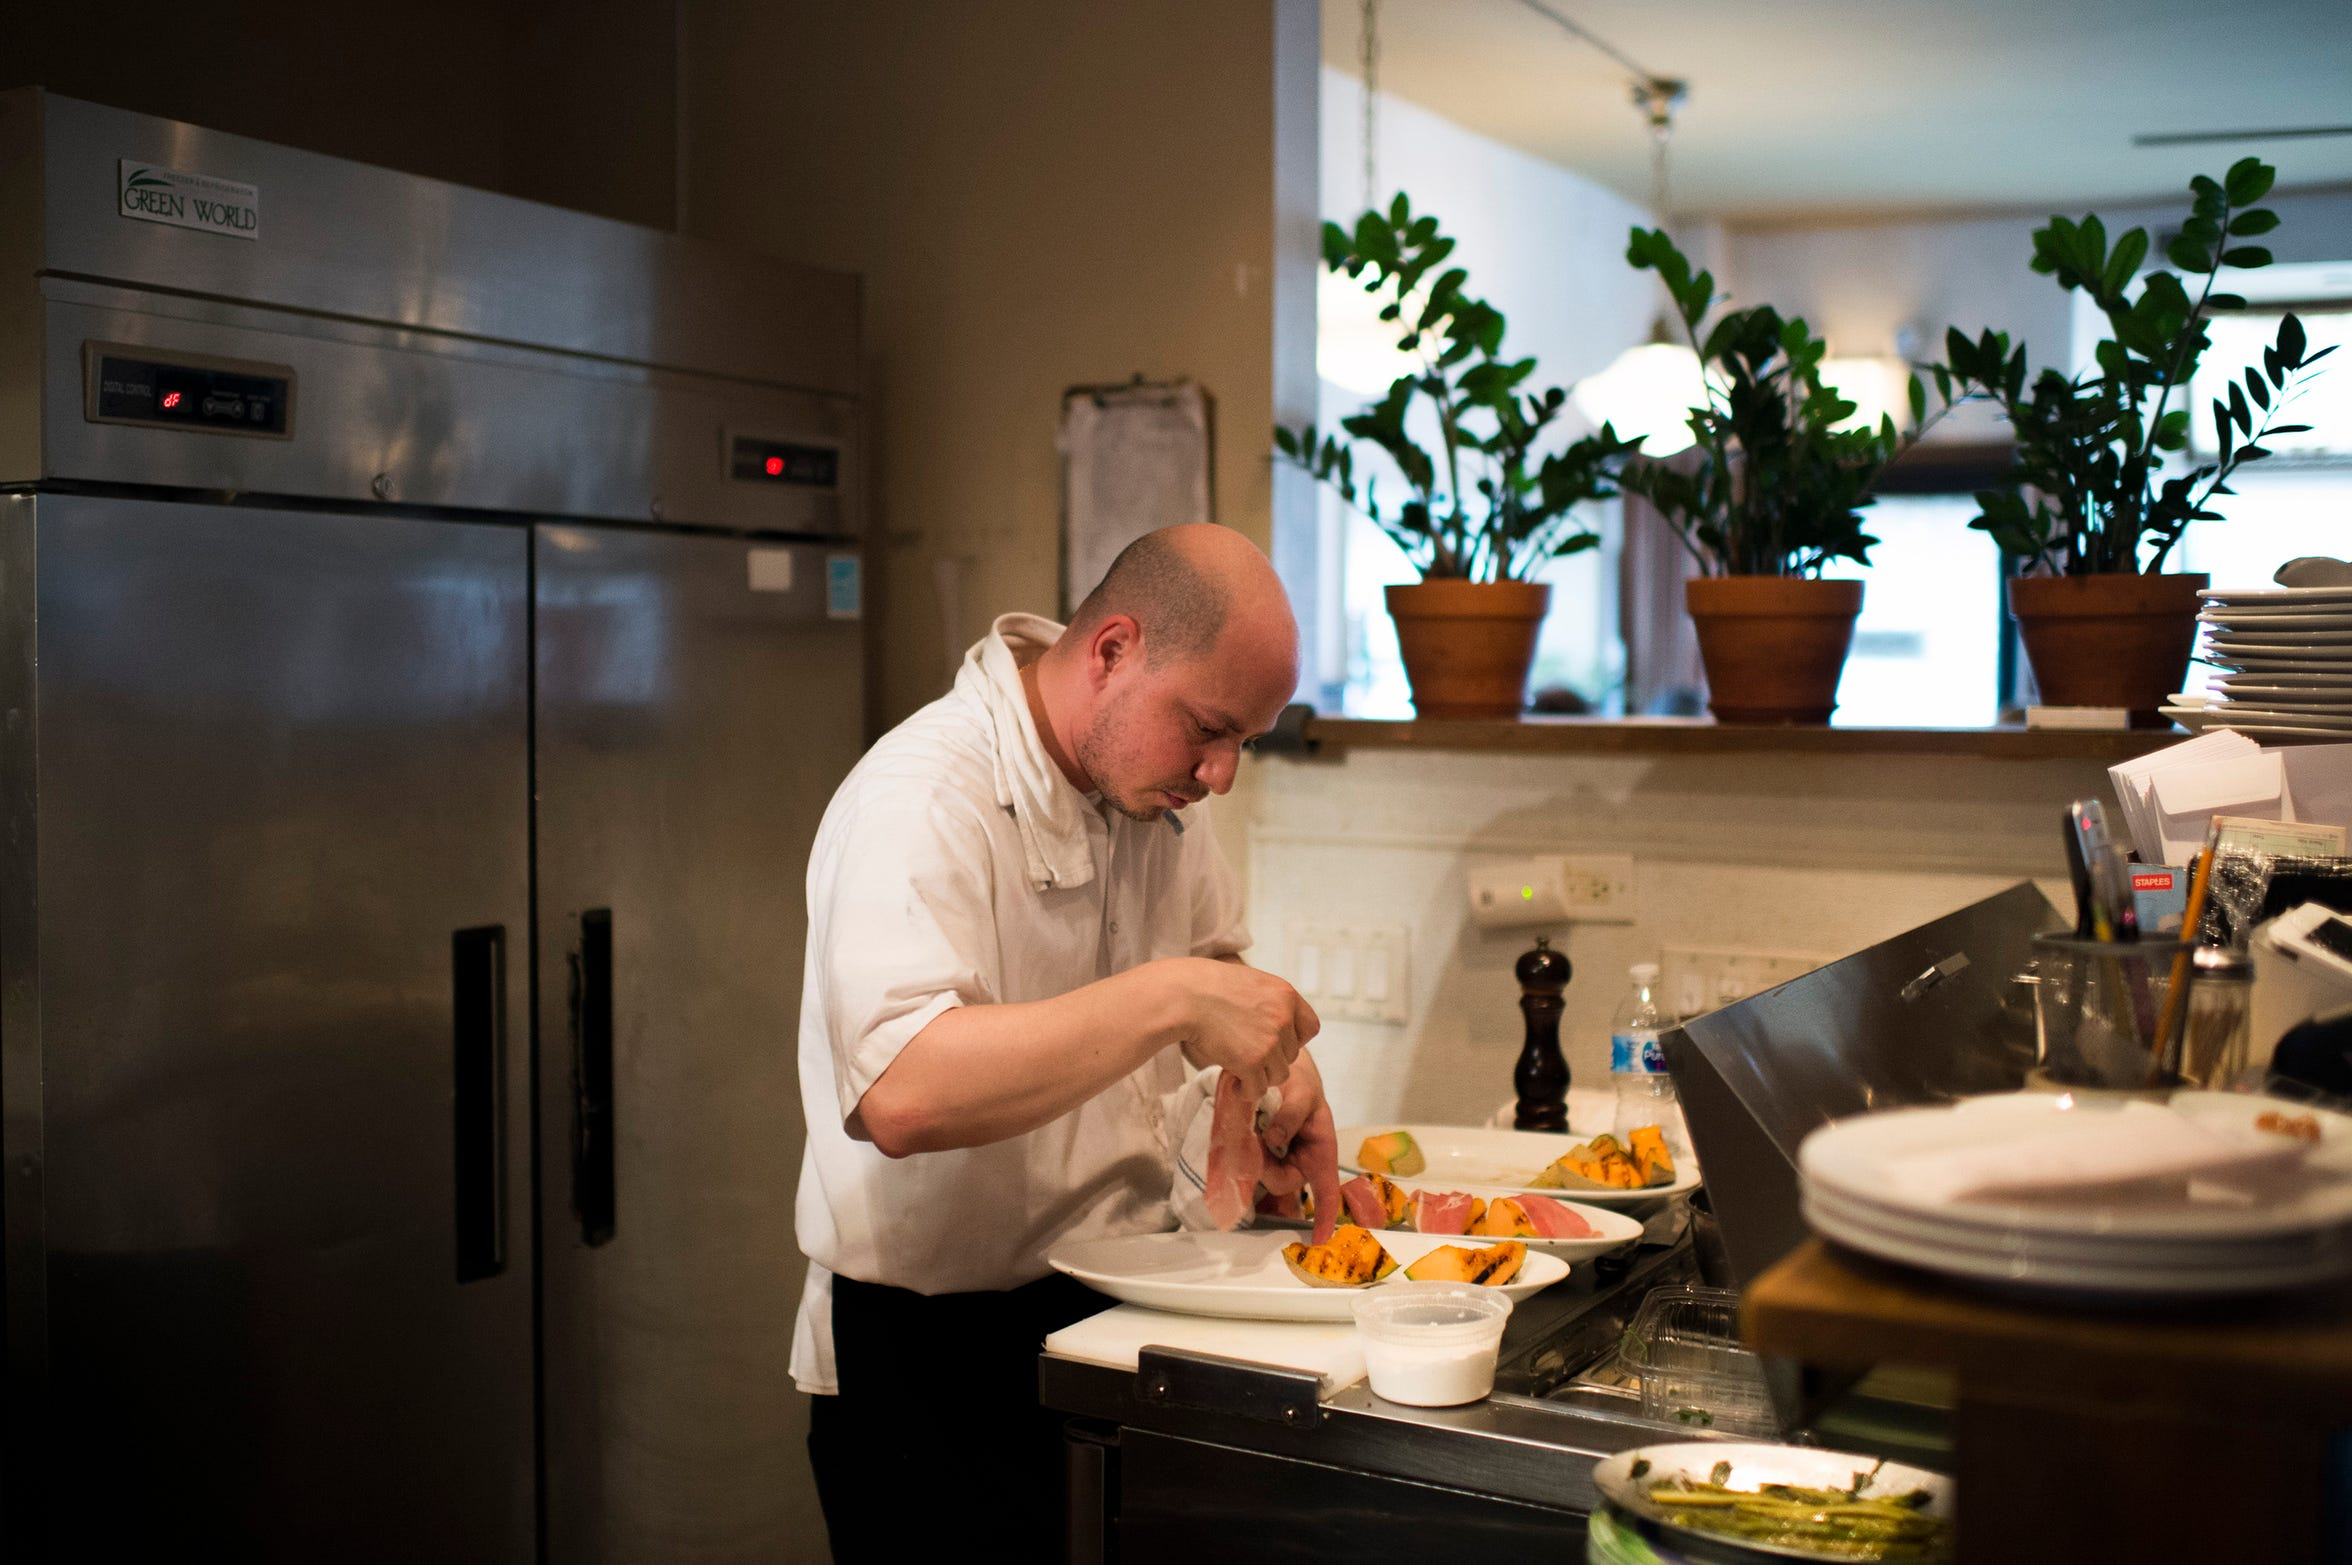 Chef Joey Baldino prepares a dish inside the Zeppoli kitchen in Collingswood. Baldino also owns Palizzi Social Club, a private club in South Philly.